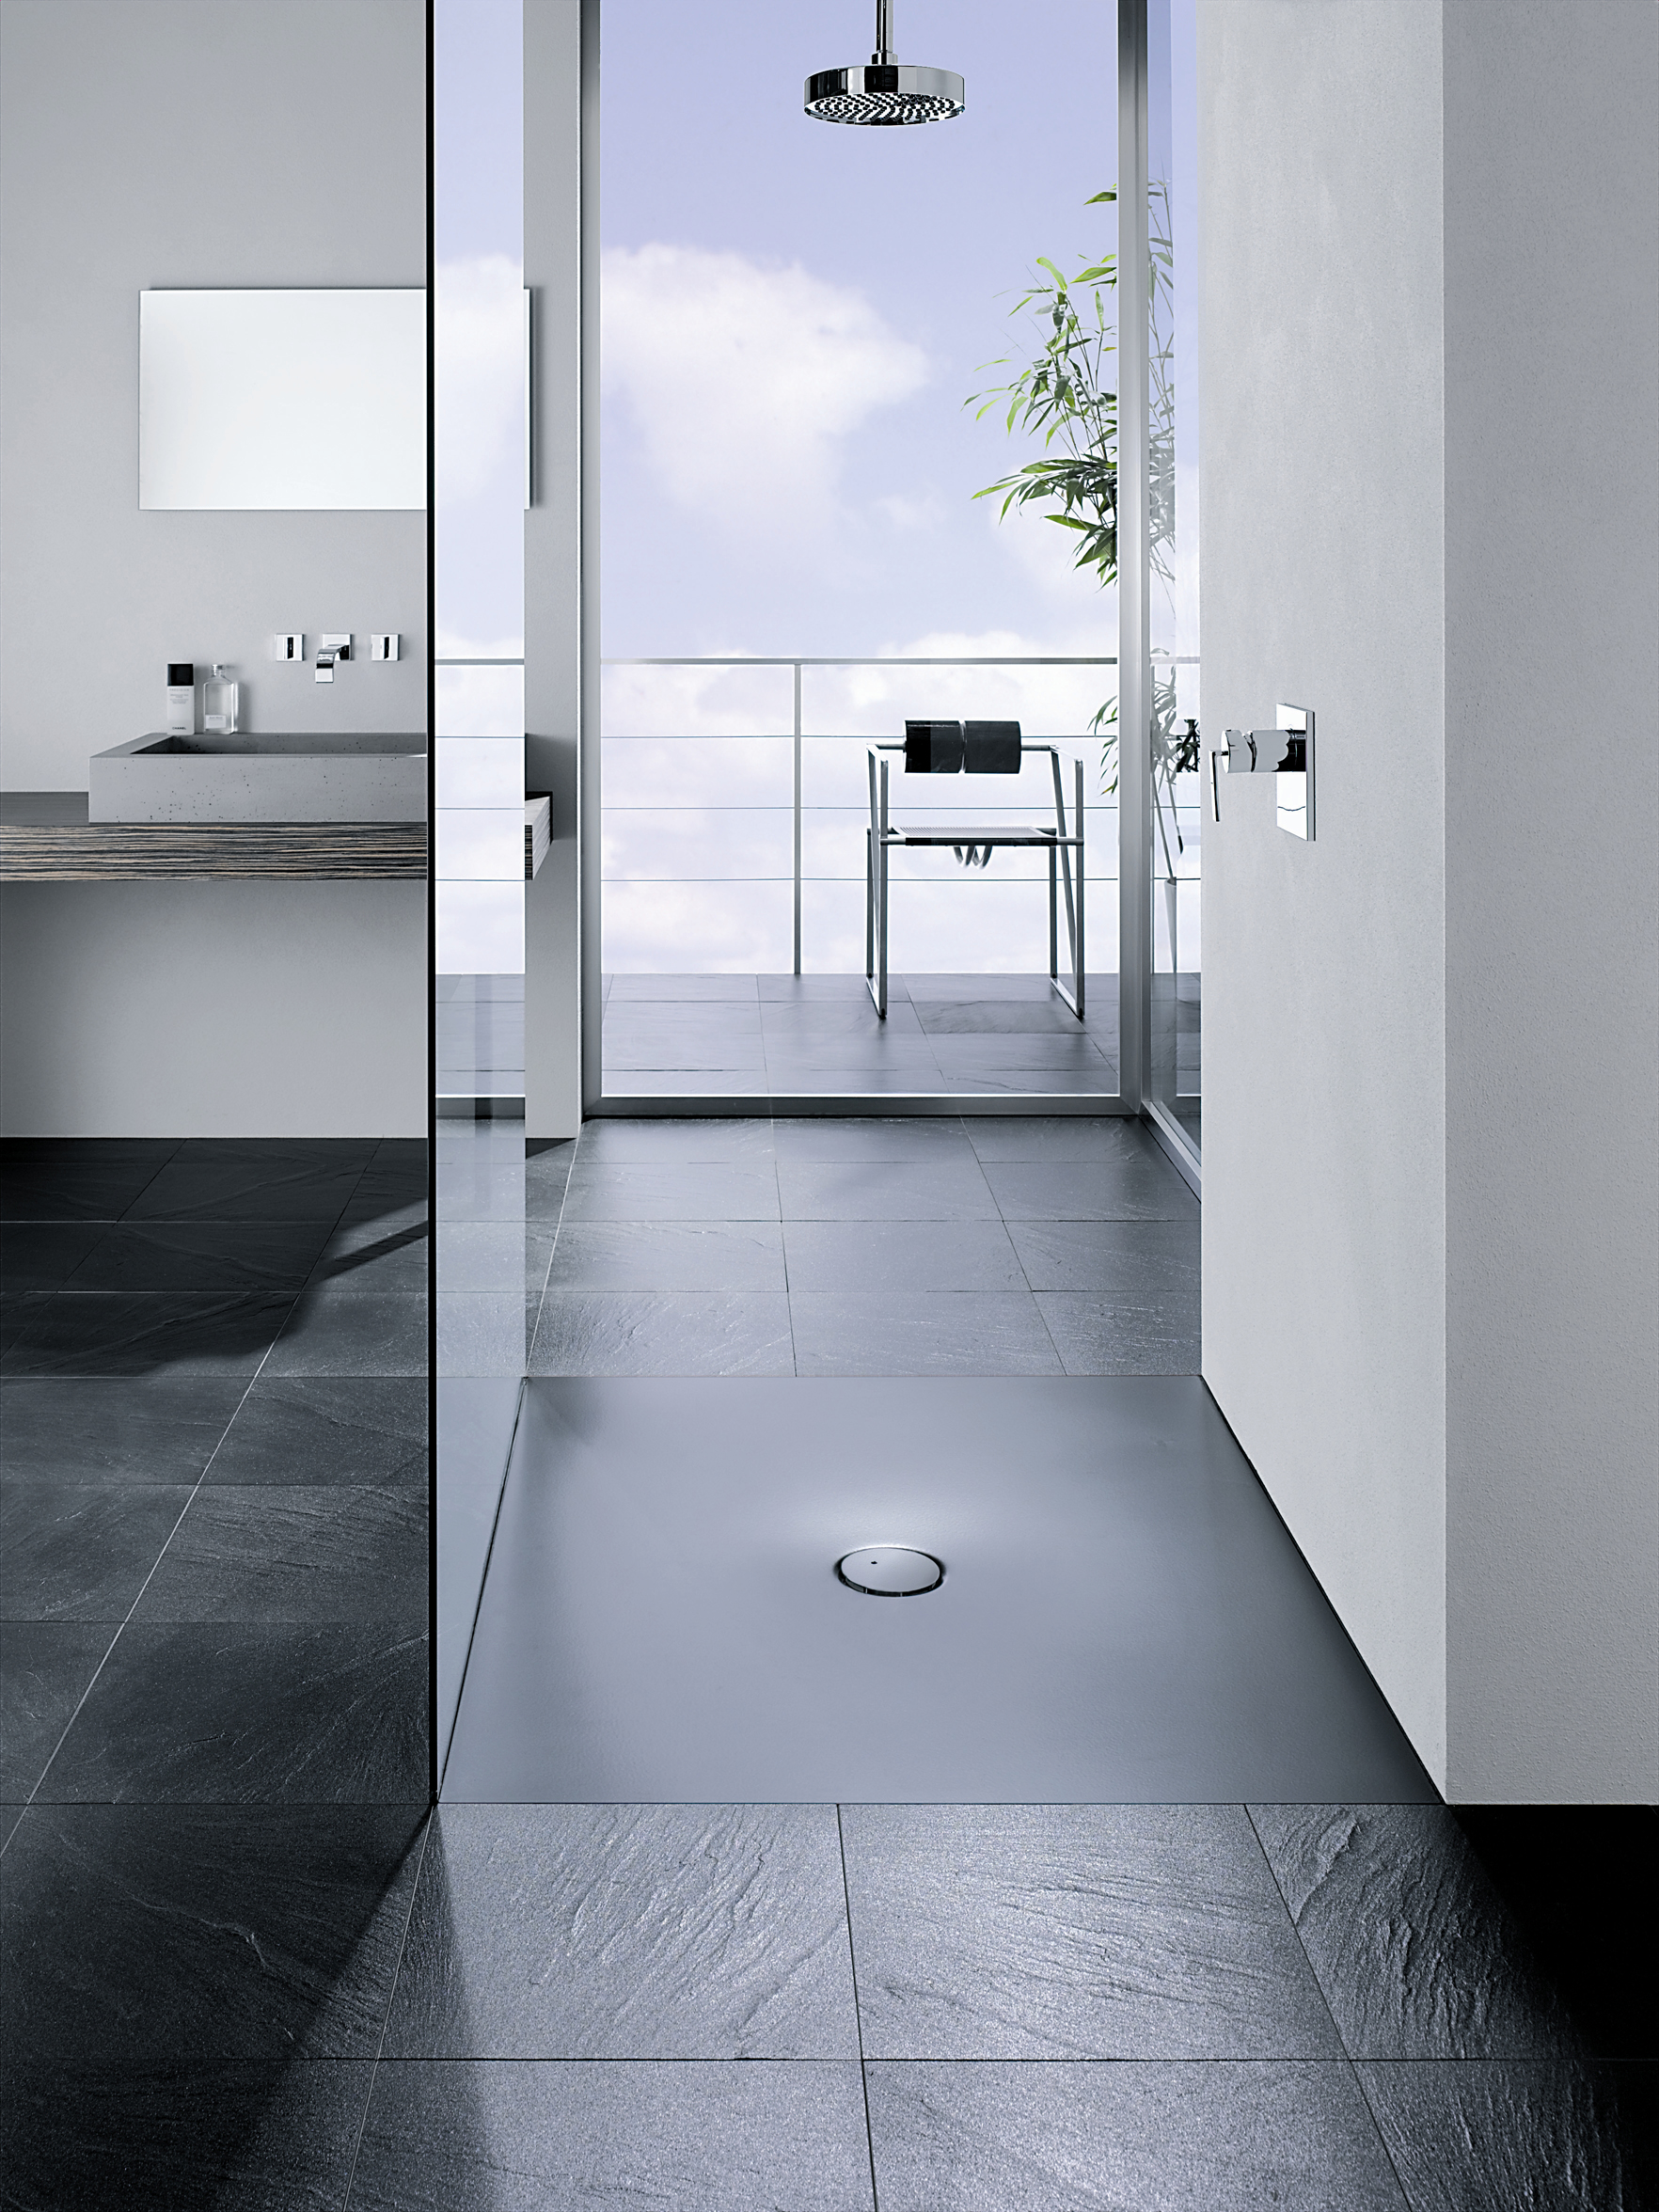 Slip resistant shower tray